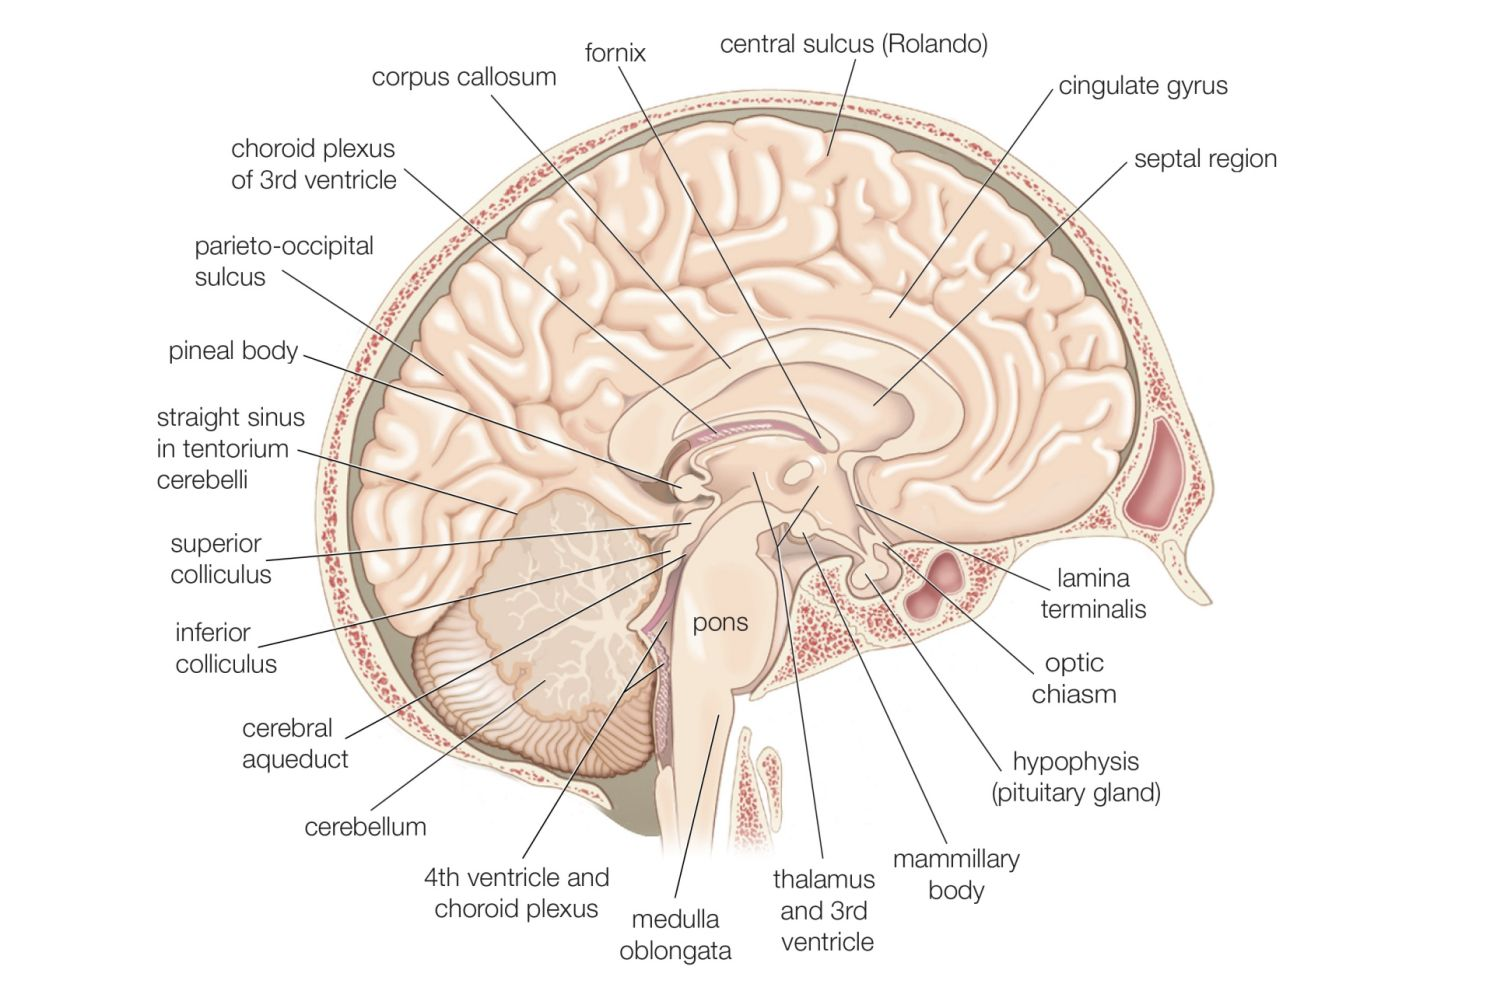 Divisions of the brain forebrain midbrain hindbrain ccuart Choice Image